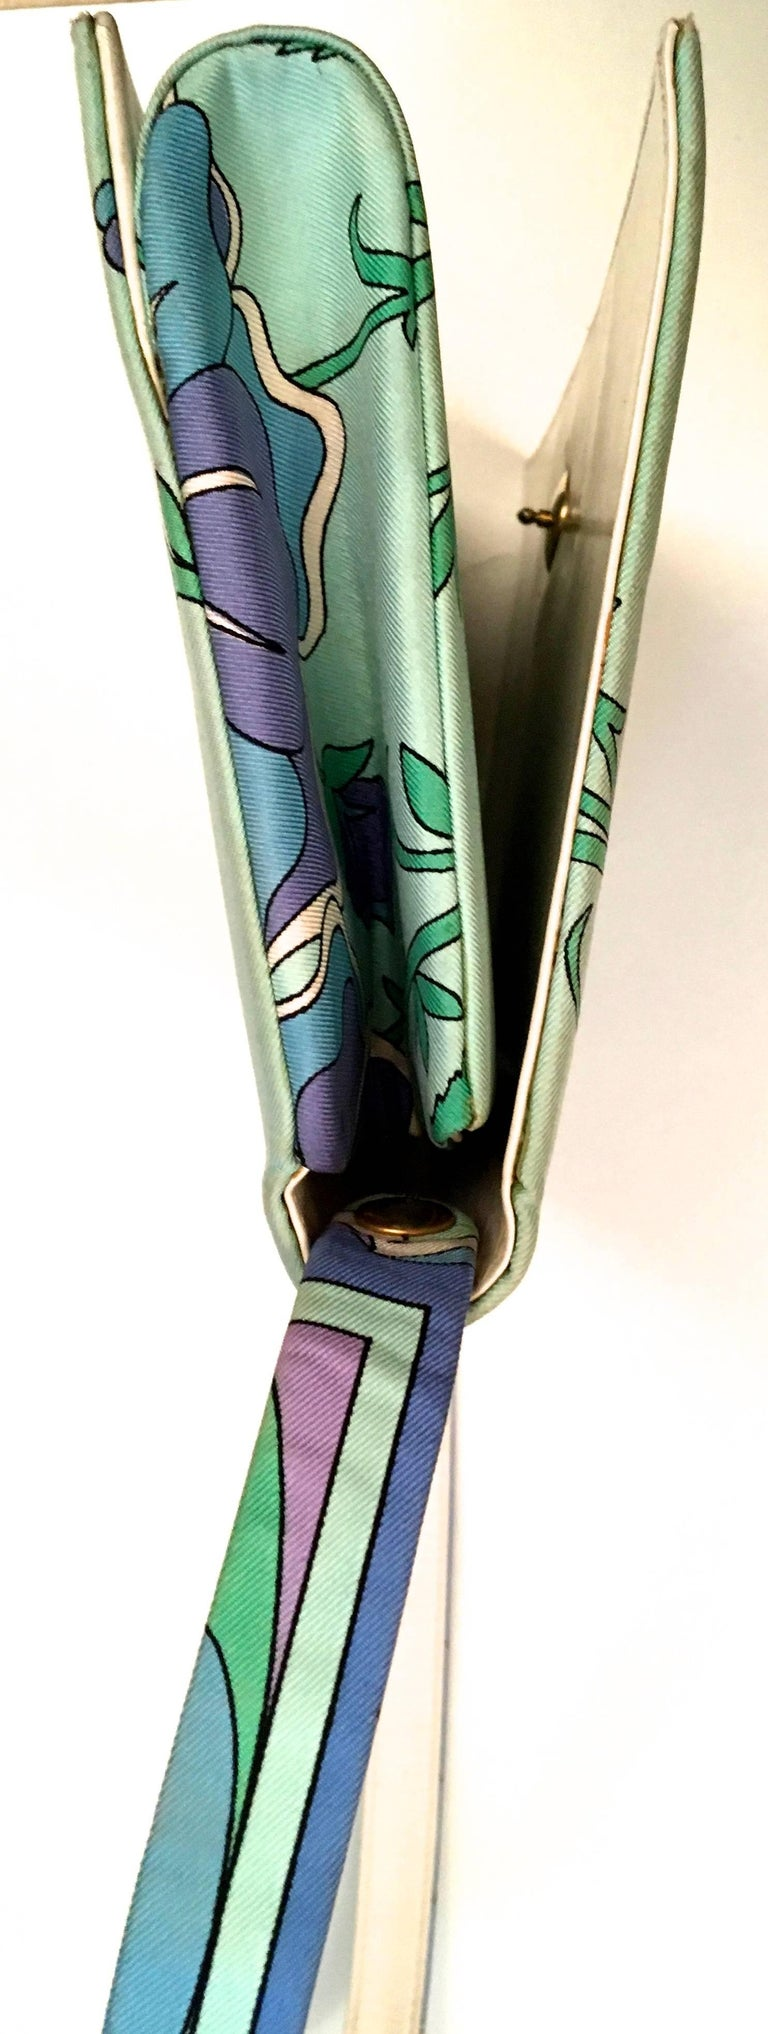 Presented here is a vintage handbag from Emilio Pucci. This vintage handbag is from the 1960's. The bag is near mint condition with images of flowers of green, lavender and light blue. The print design is distinctively Pucci styling. The bag is made